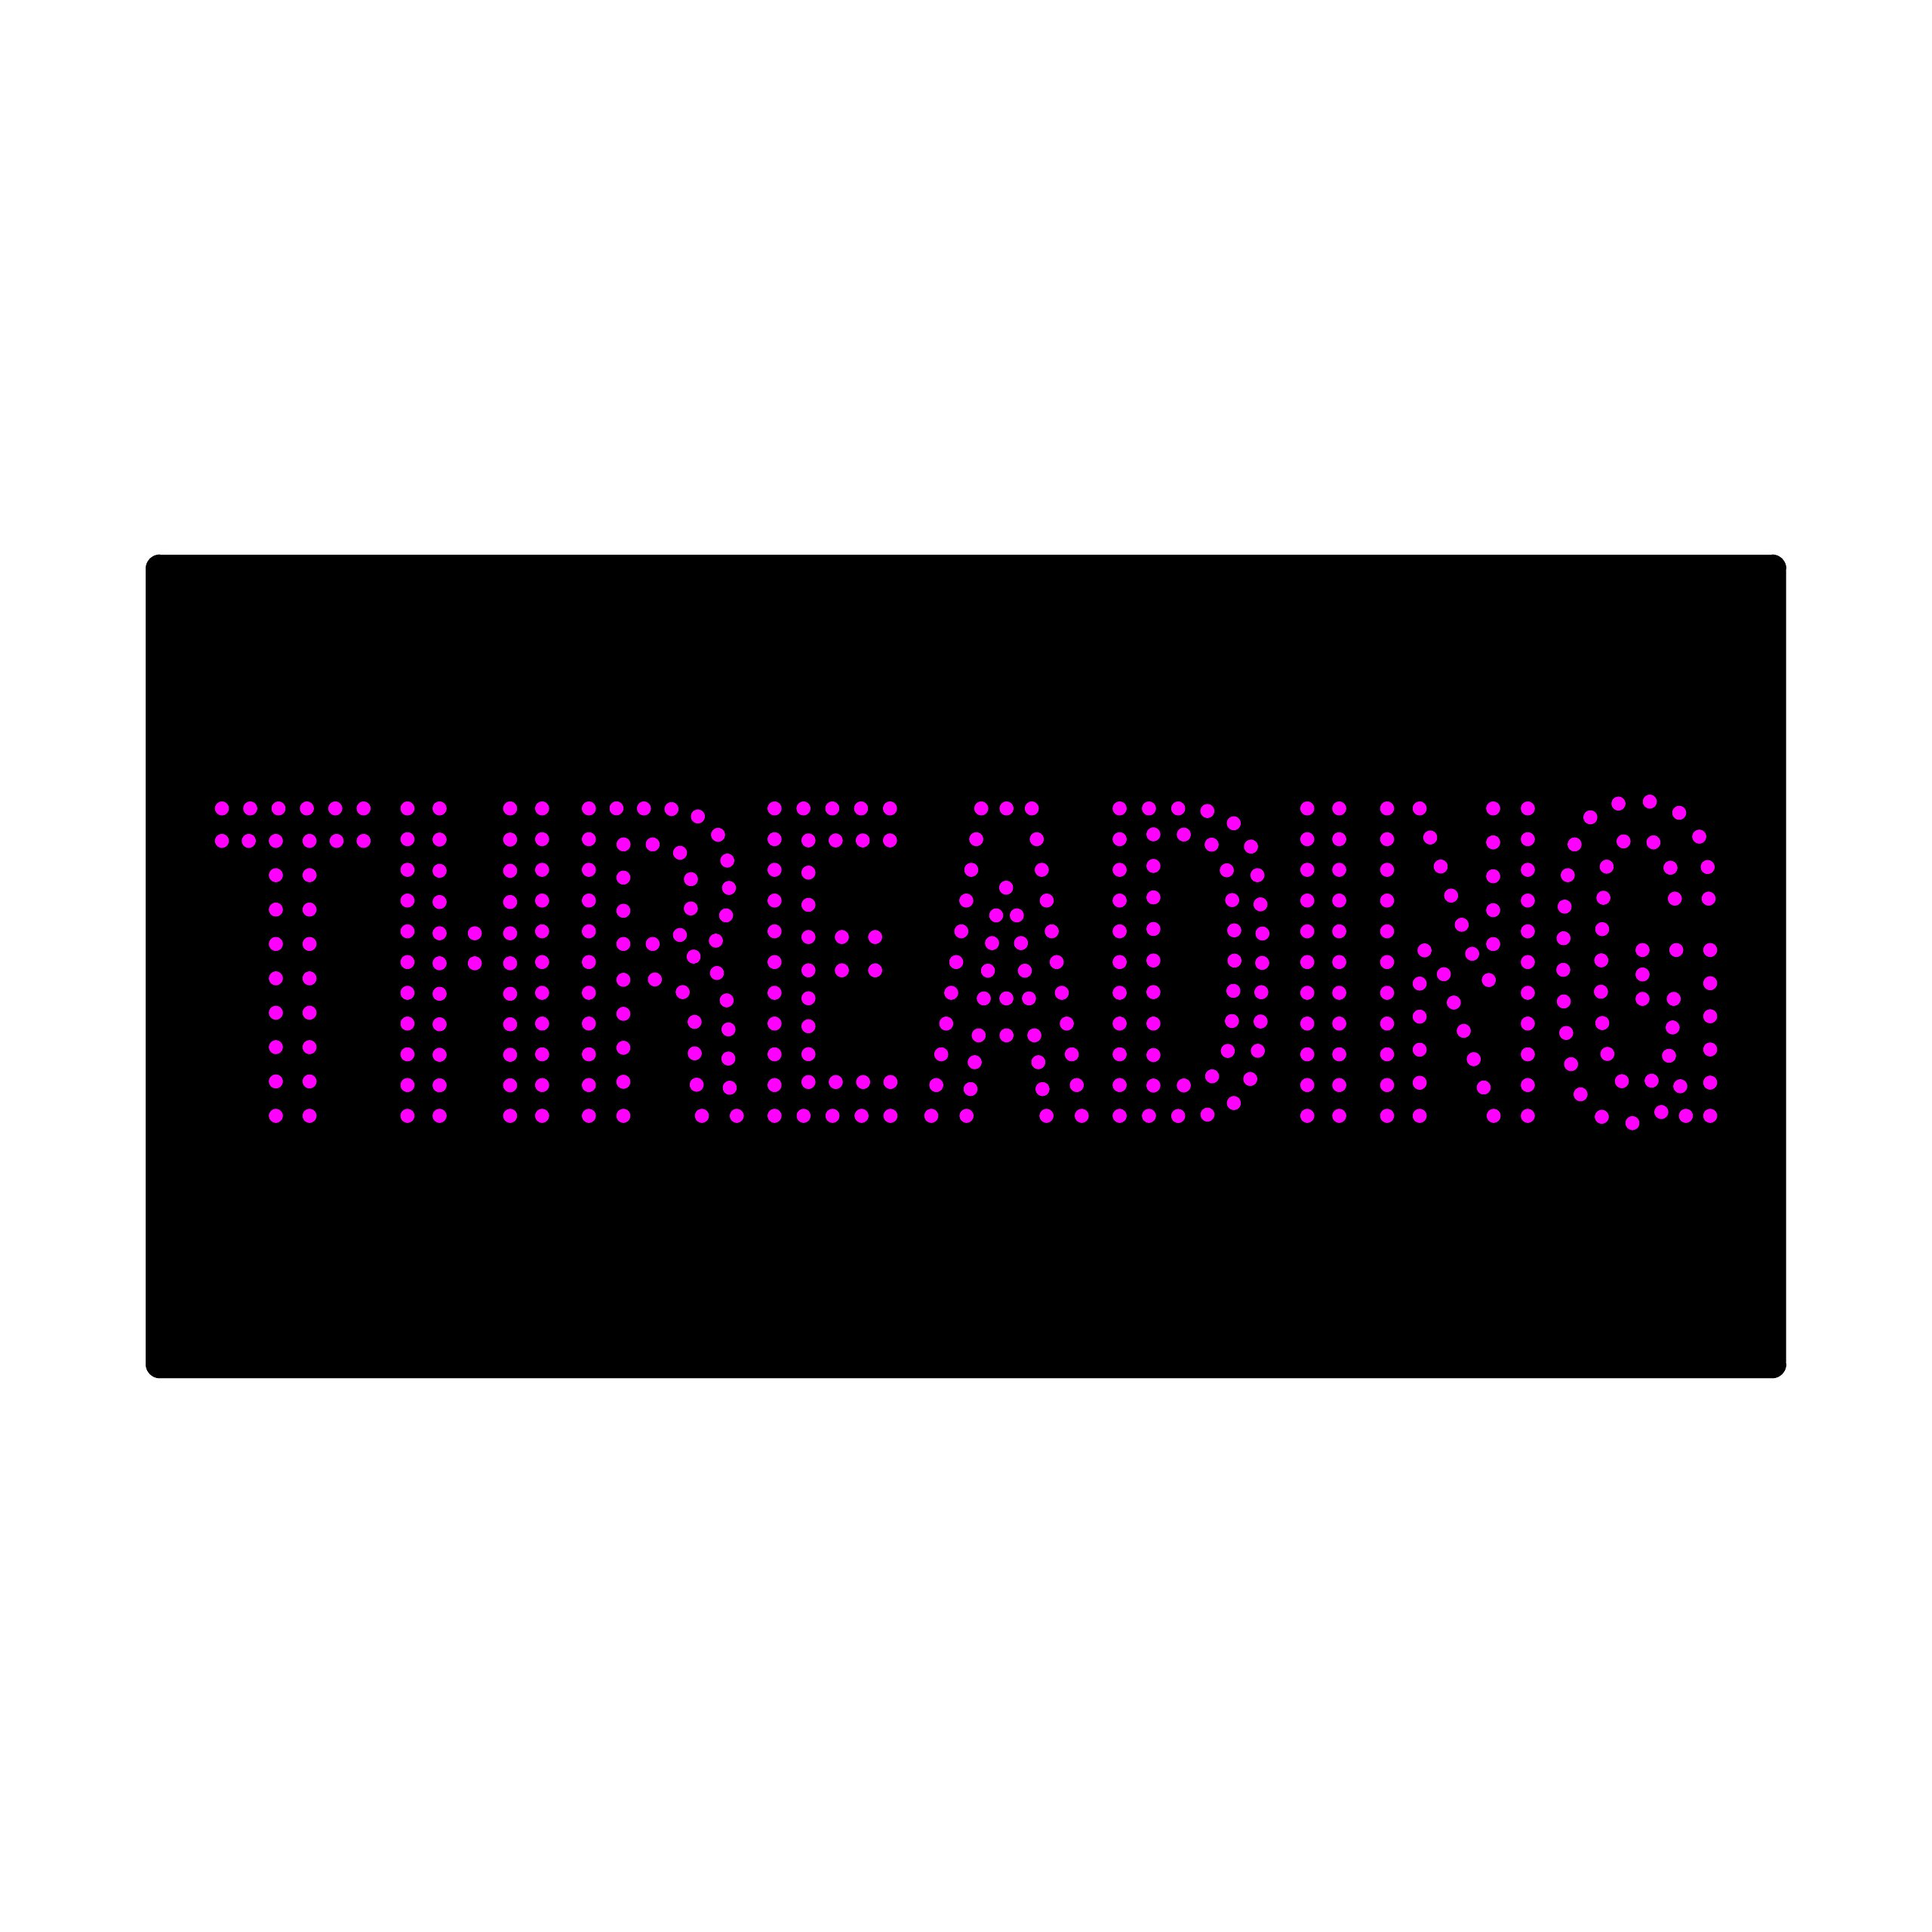 LED Treading Light Sign Super Bright Electric Advertising Display Board for Eyebrow Facial Waxing Nails Spa Pedicure Message Business Shop Store Window Bedroom 24 x 12 inches